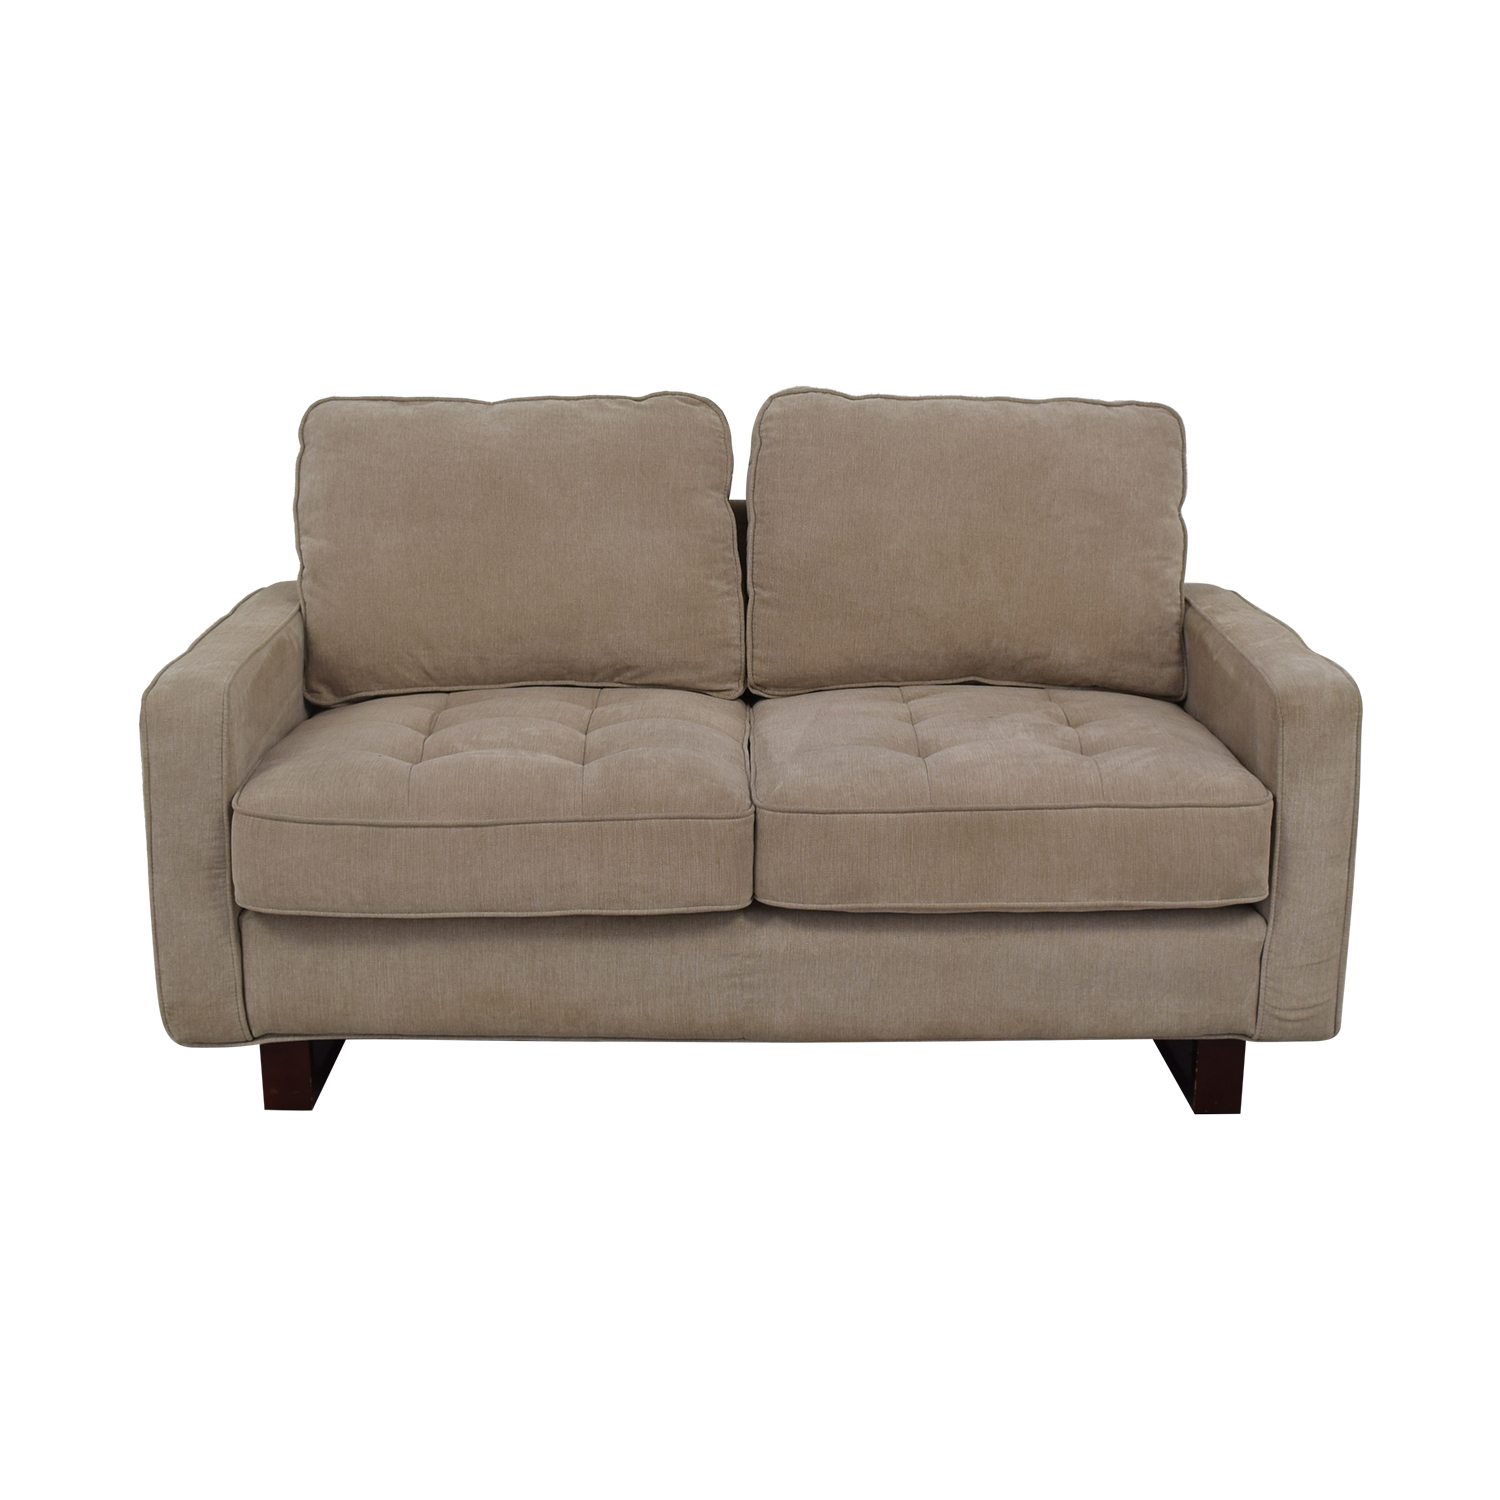 buy West Elm Beige Two Cushion Loveseat West Elm Sofas